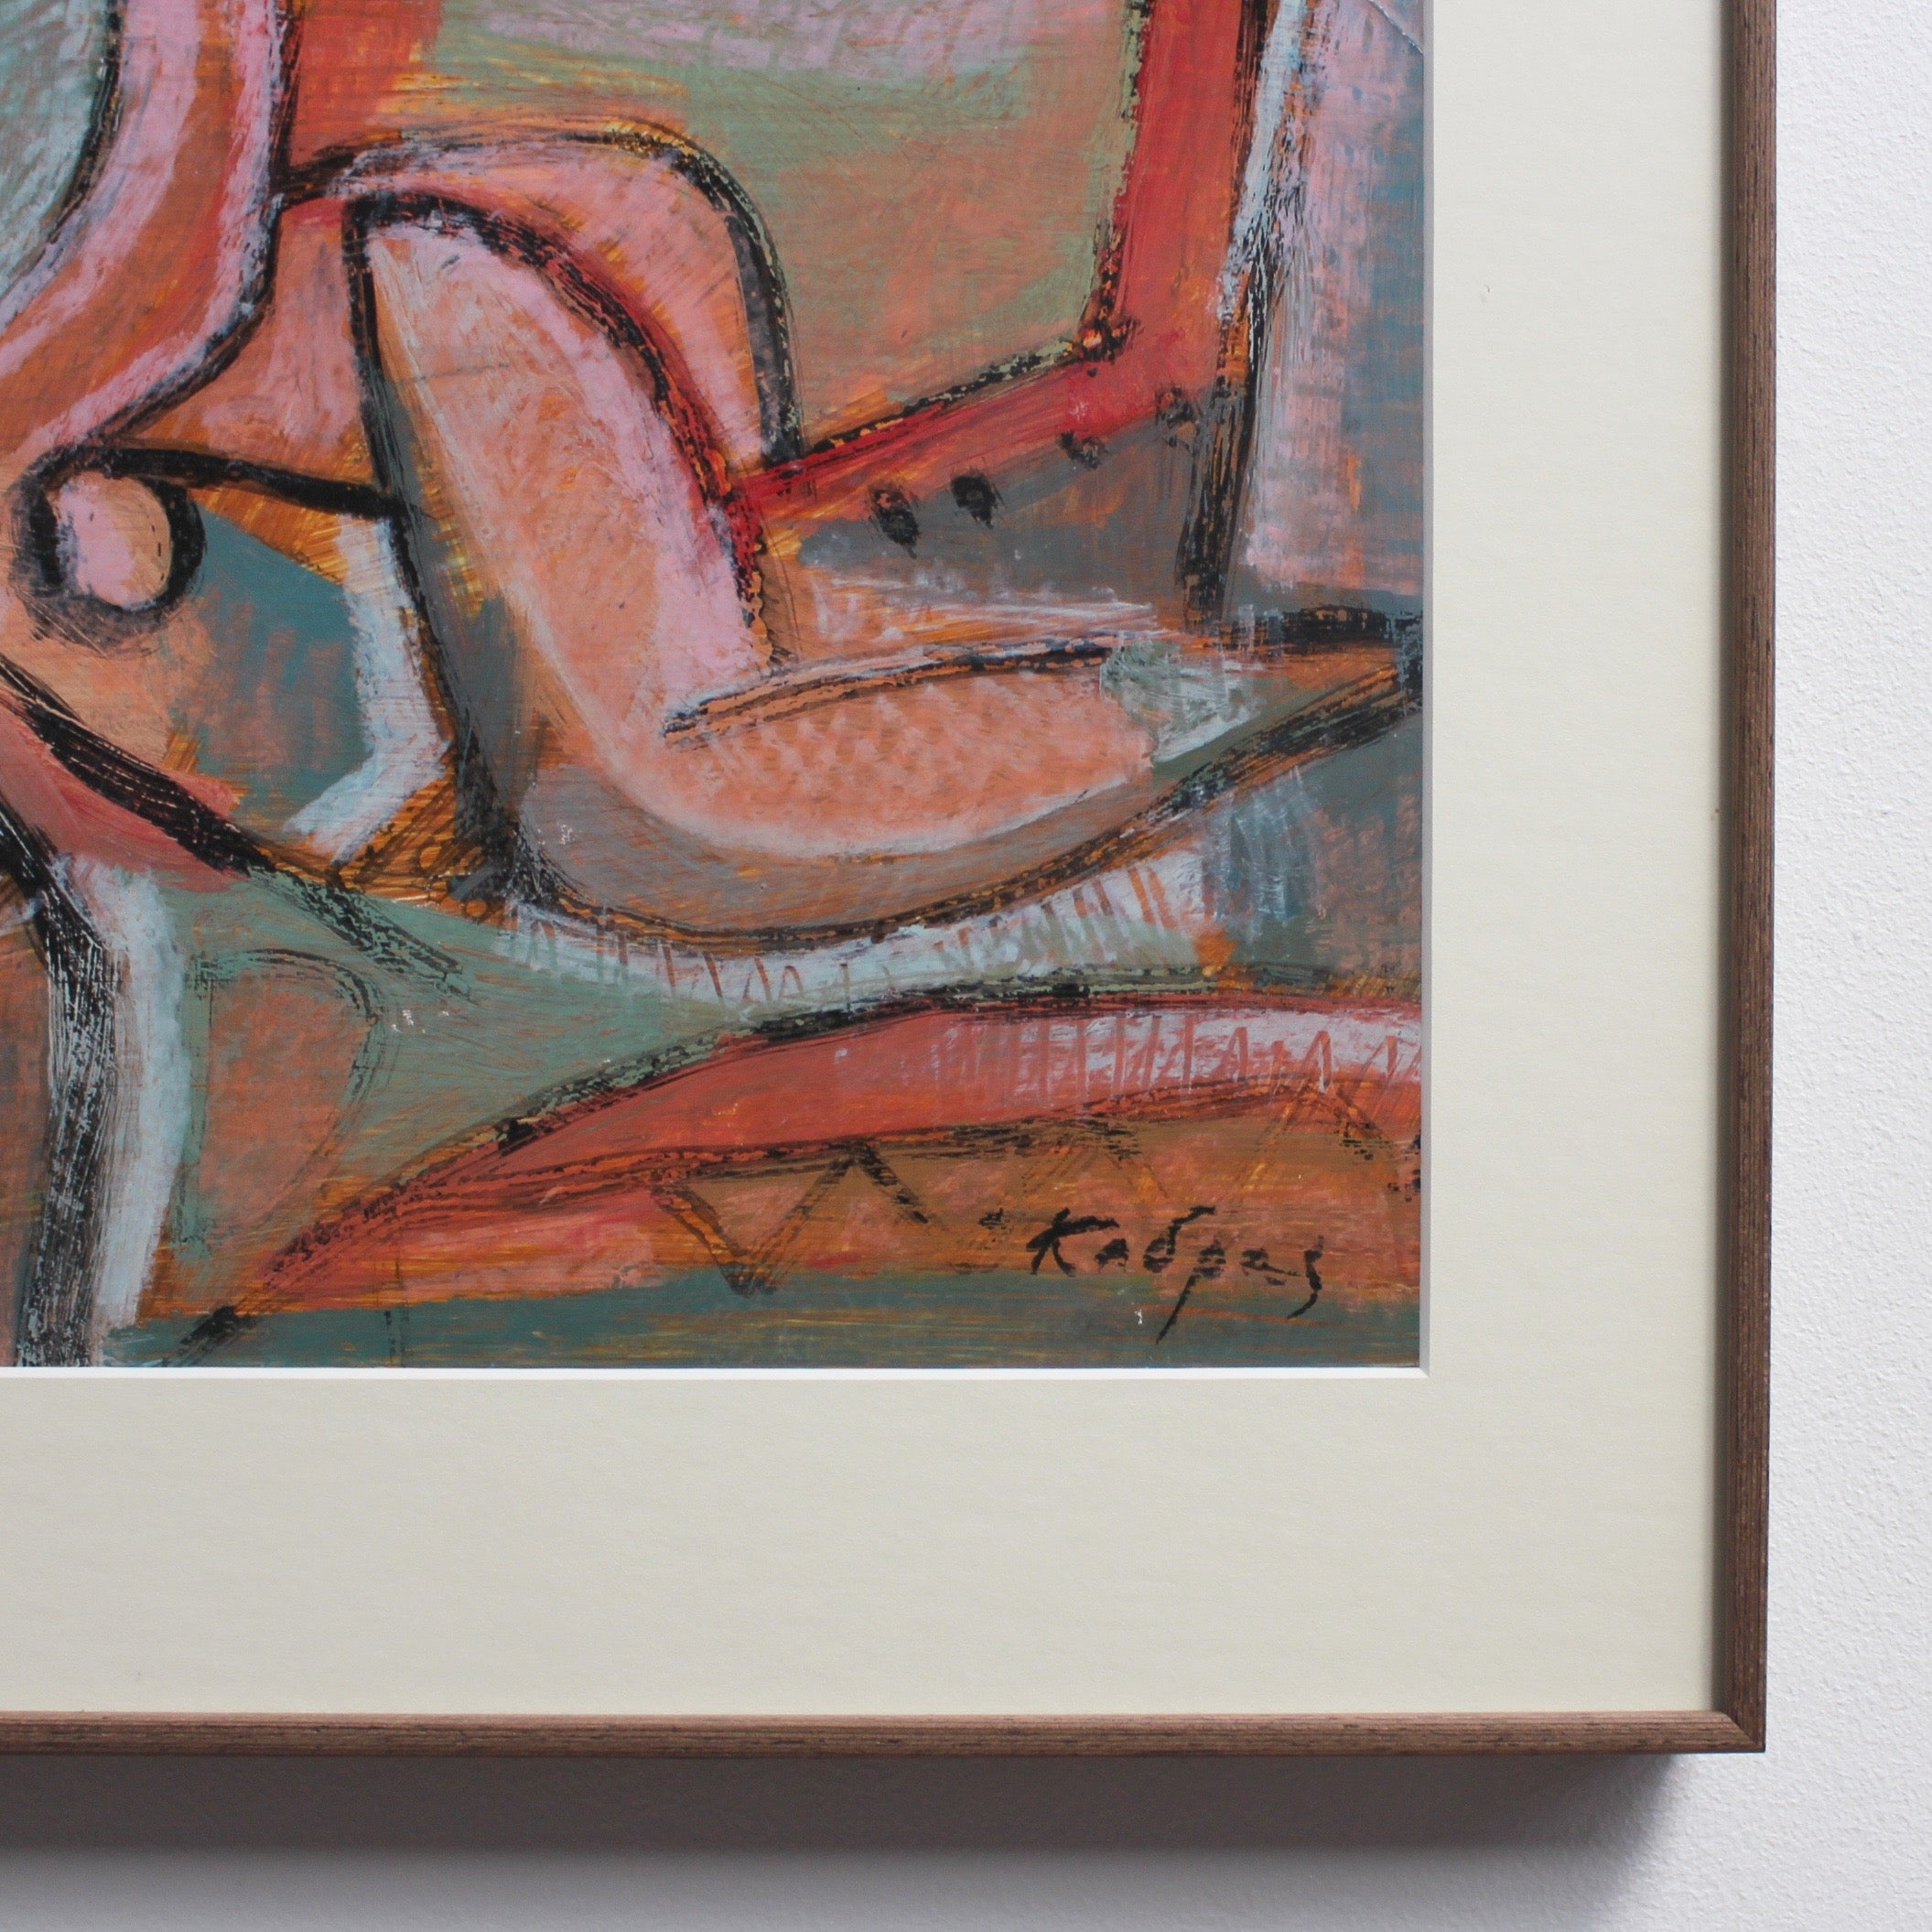 'Reclining Woman in Abstract' by Yiannis Kadras (circa 2000)